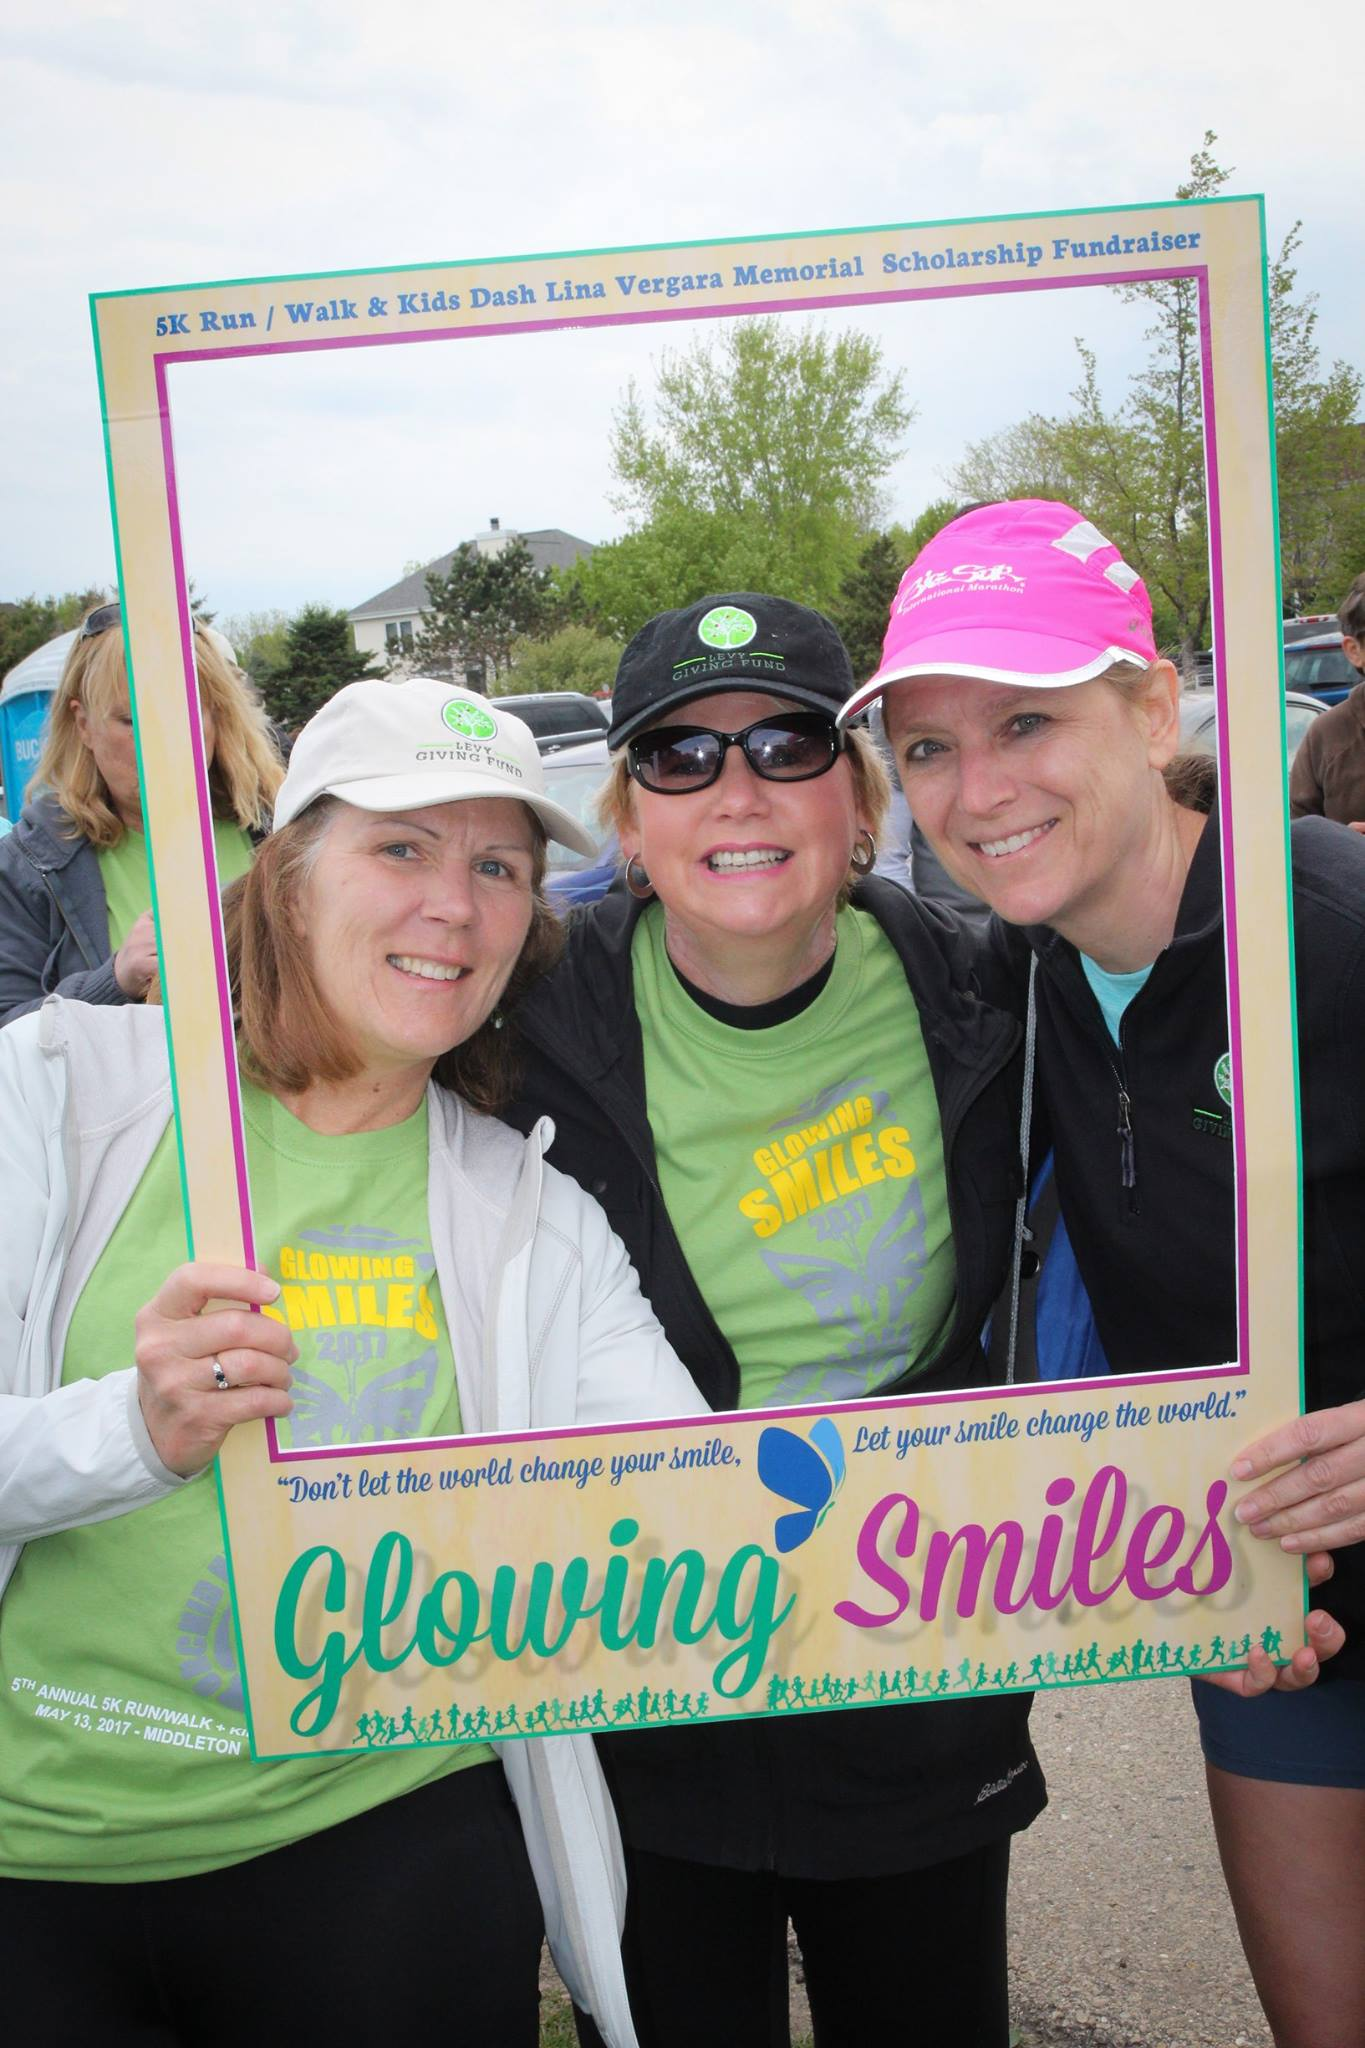 Glowing Smiles Race 2017